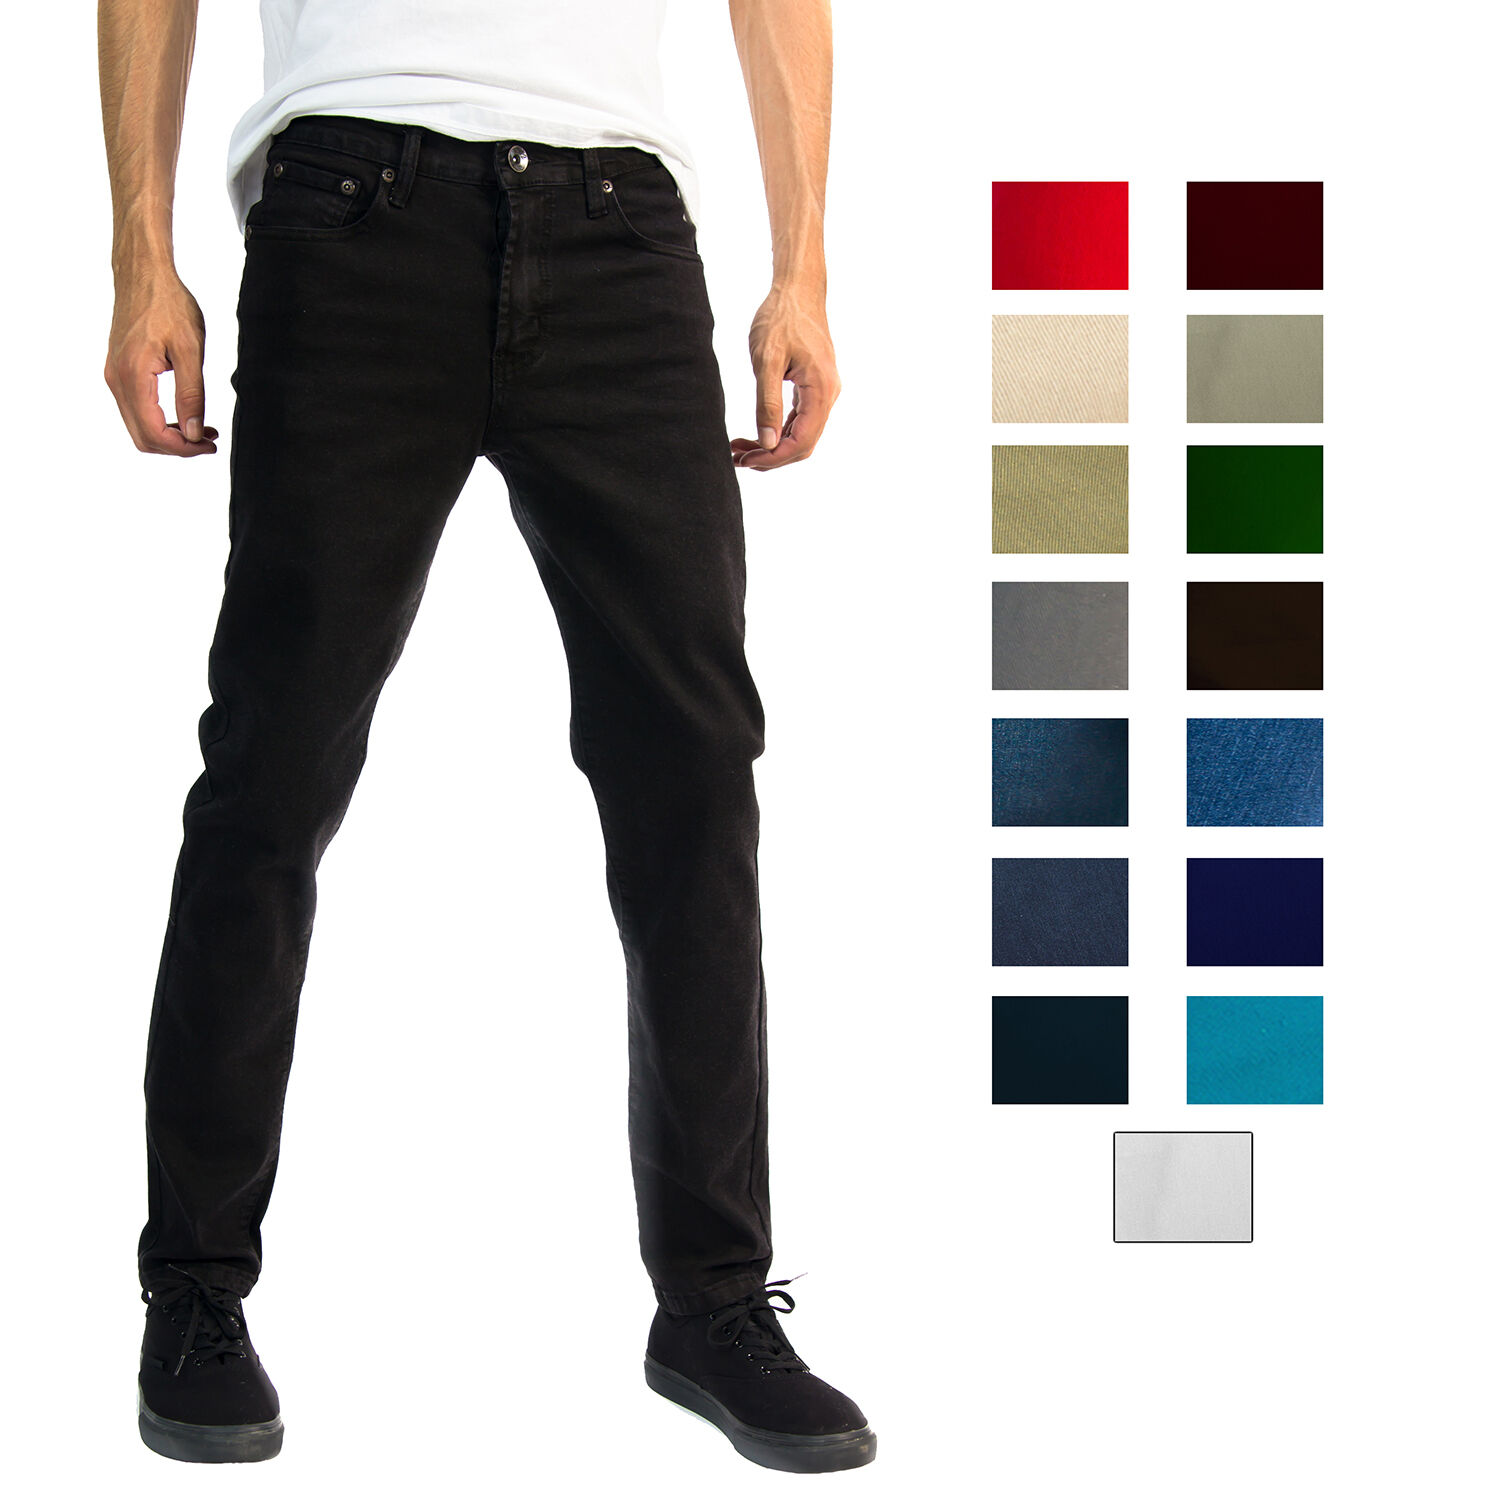 $17.95 - Alta Premium Designer Fashion Mens Slim Fit Skinny Denim Jeans - Multiple Styles